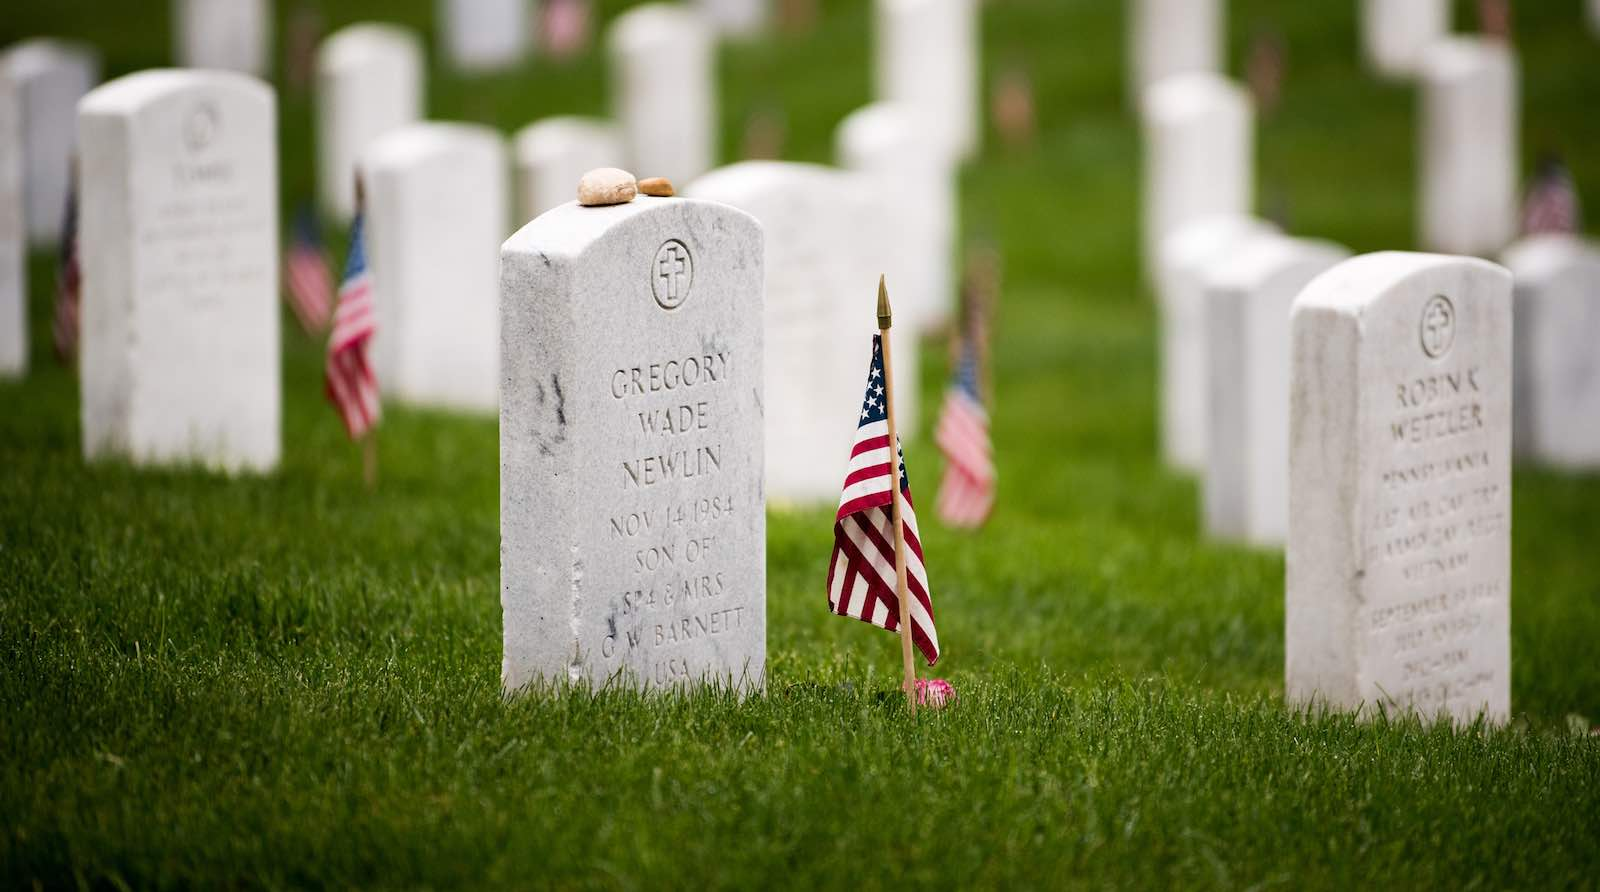 Arlington National Cemetery, United States (Photo: James N. Mattis/Flickr)